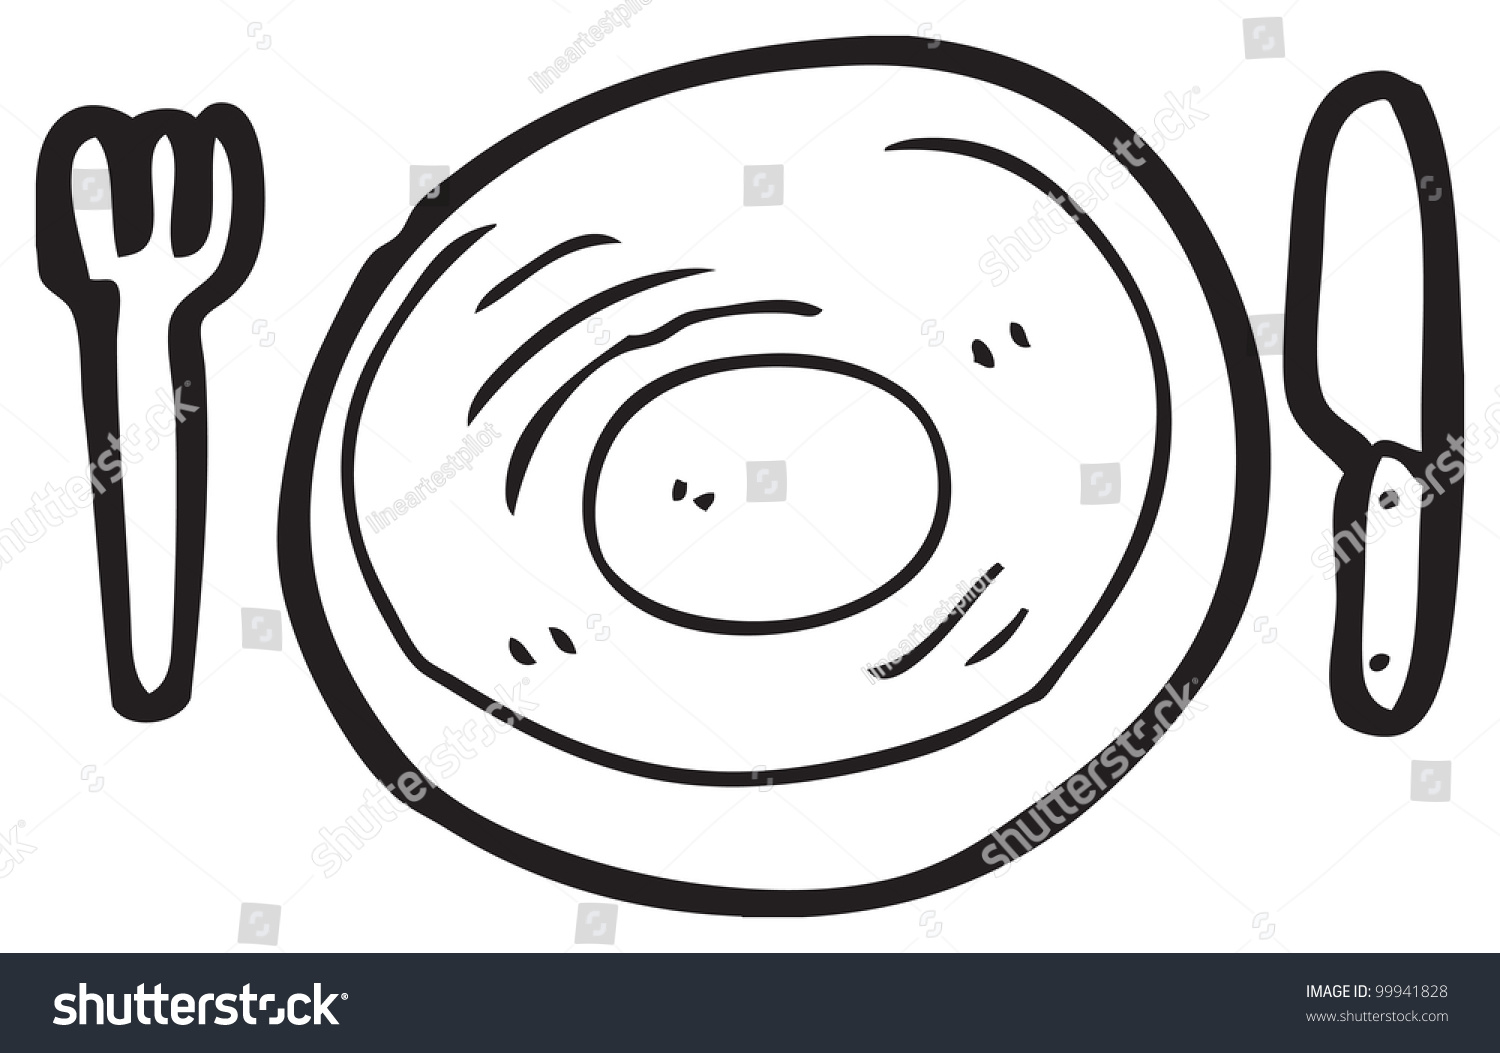 dinner plate cartoon  sc 1 st  Shutterstock & Dinner Plate Cartoon Stock Illustration 99941828 - Shutterstock